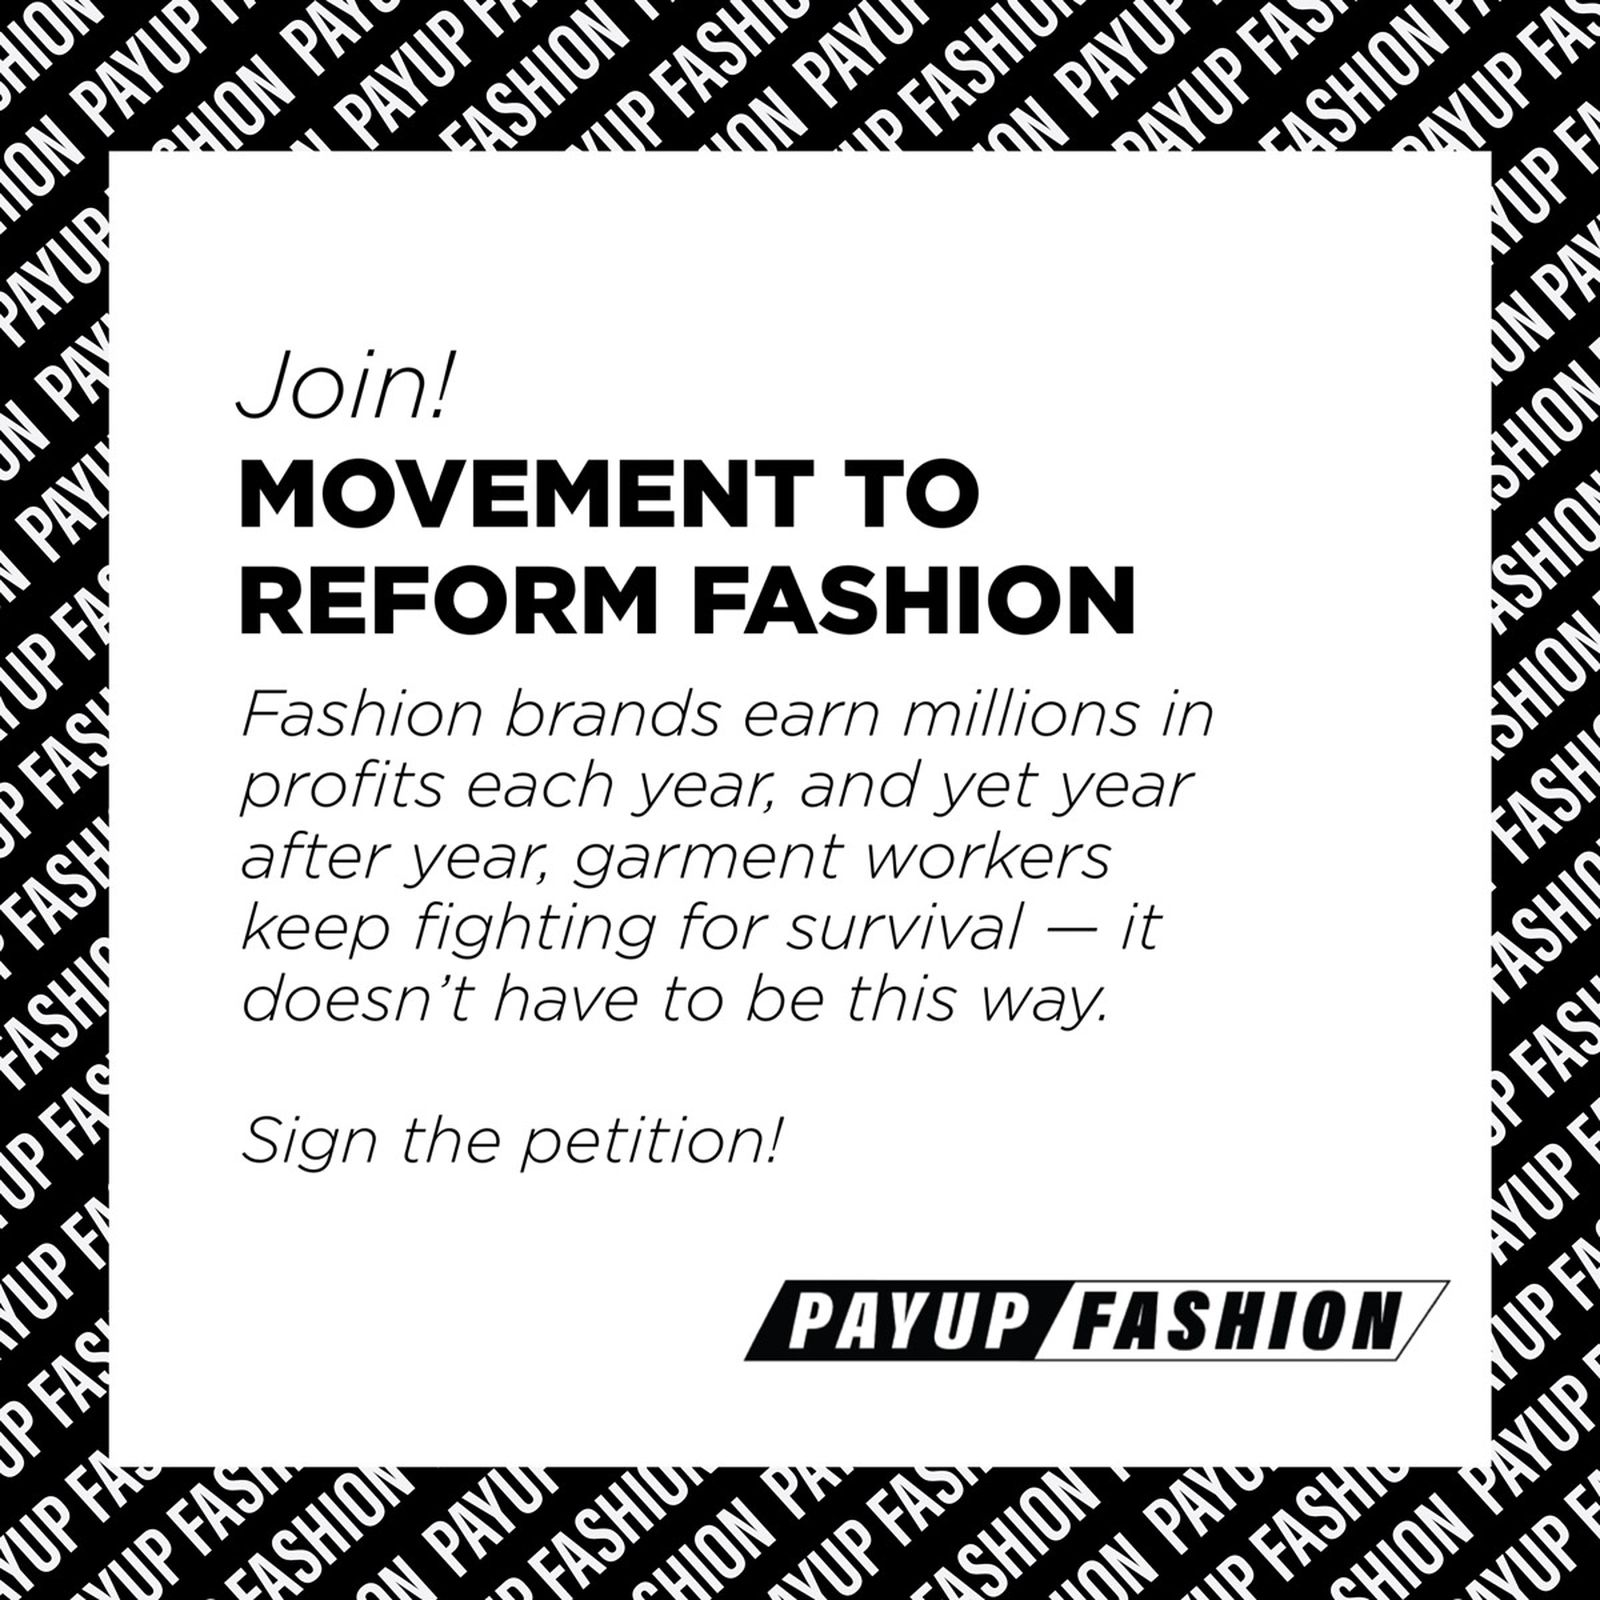 pay-up-fashion-campaign-02